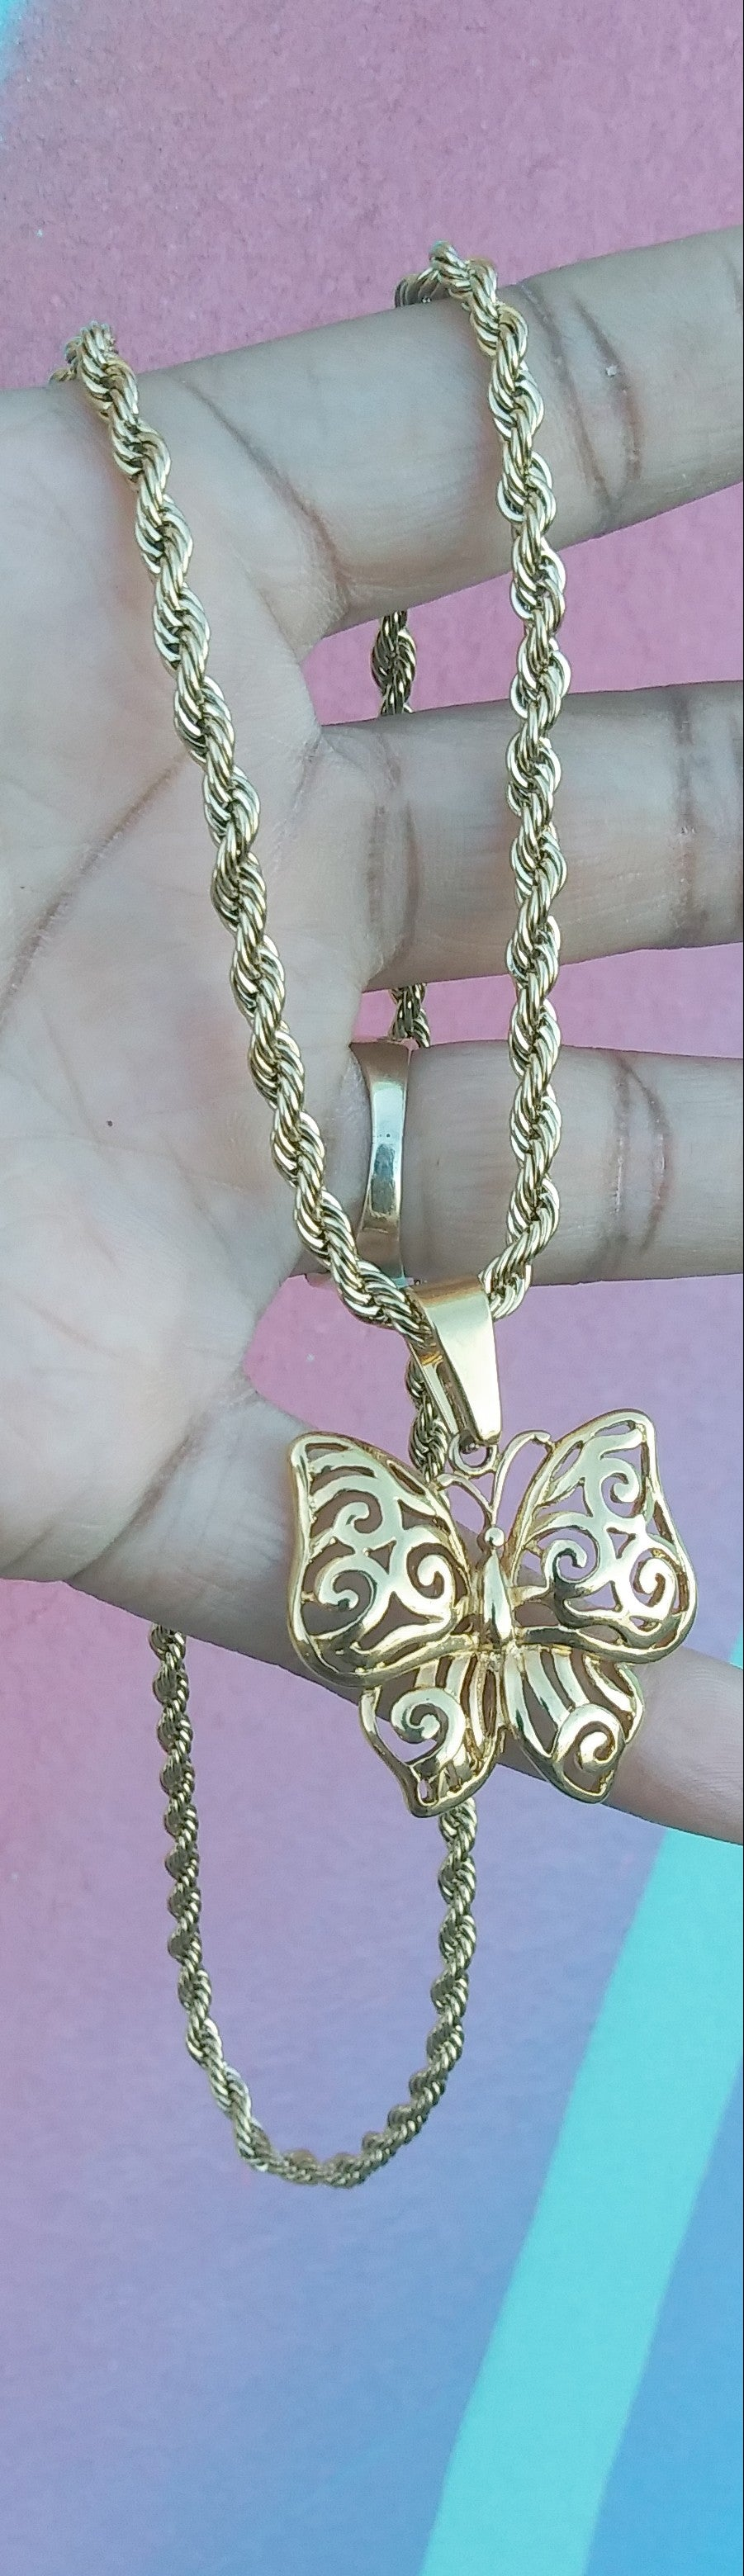 14k Gold Plated 4mm Rope chain and butterfly pendant  set